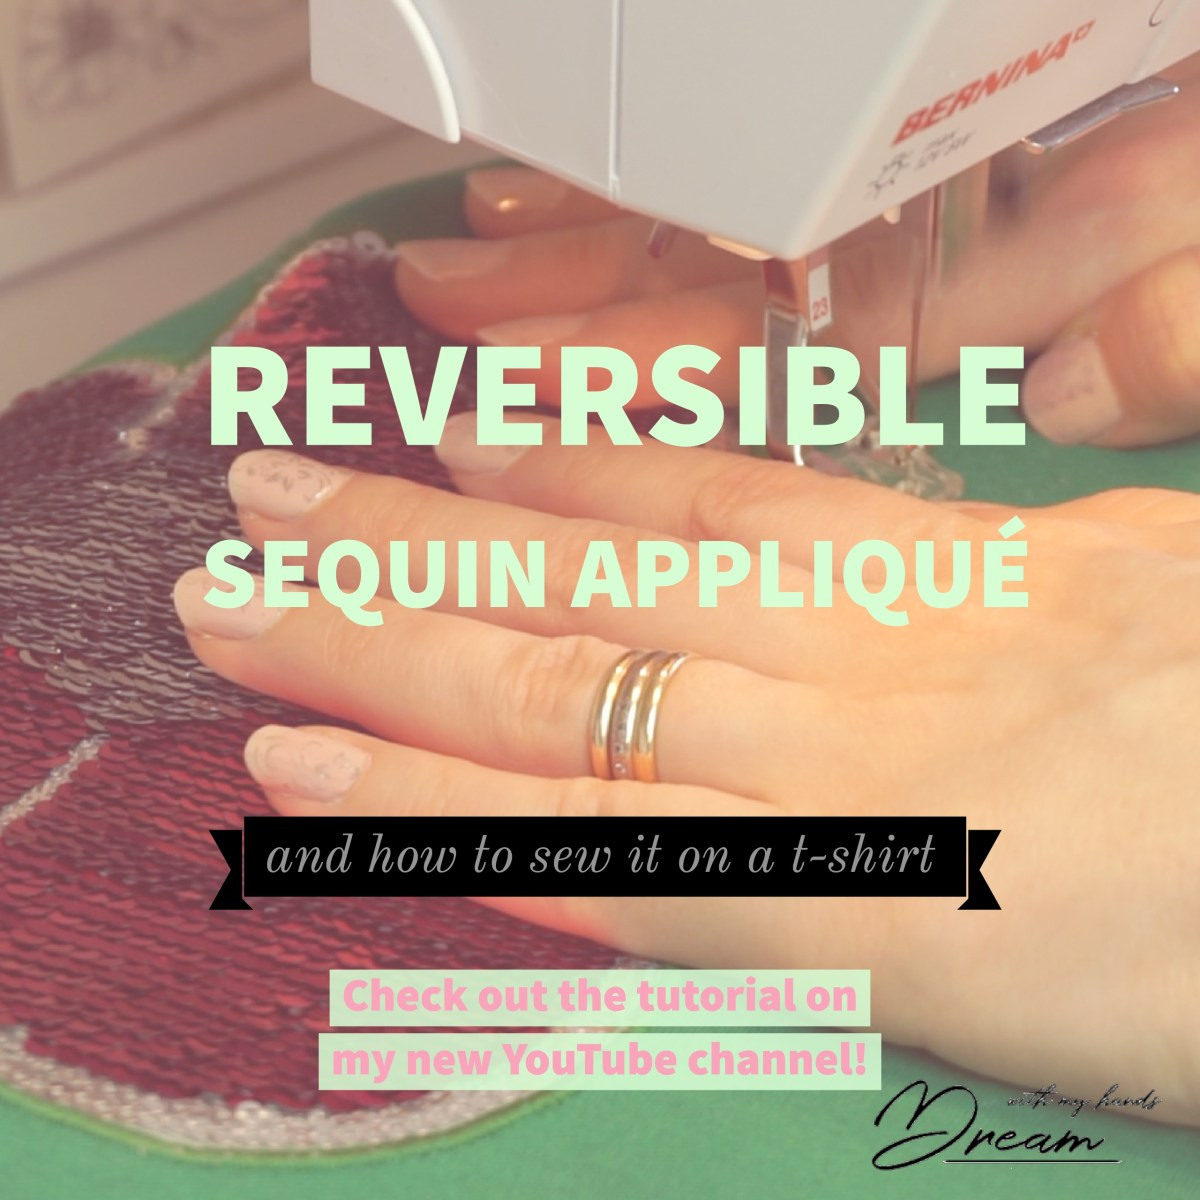 How to sew on a reversible sequin appliqué patch